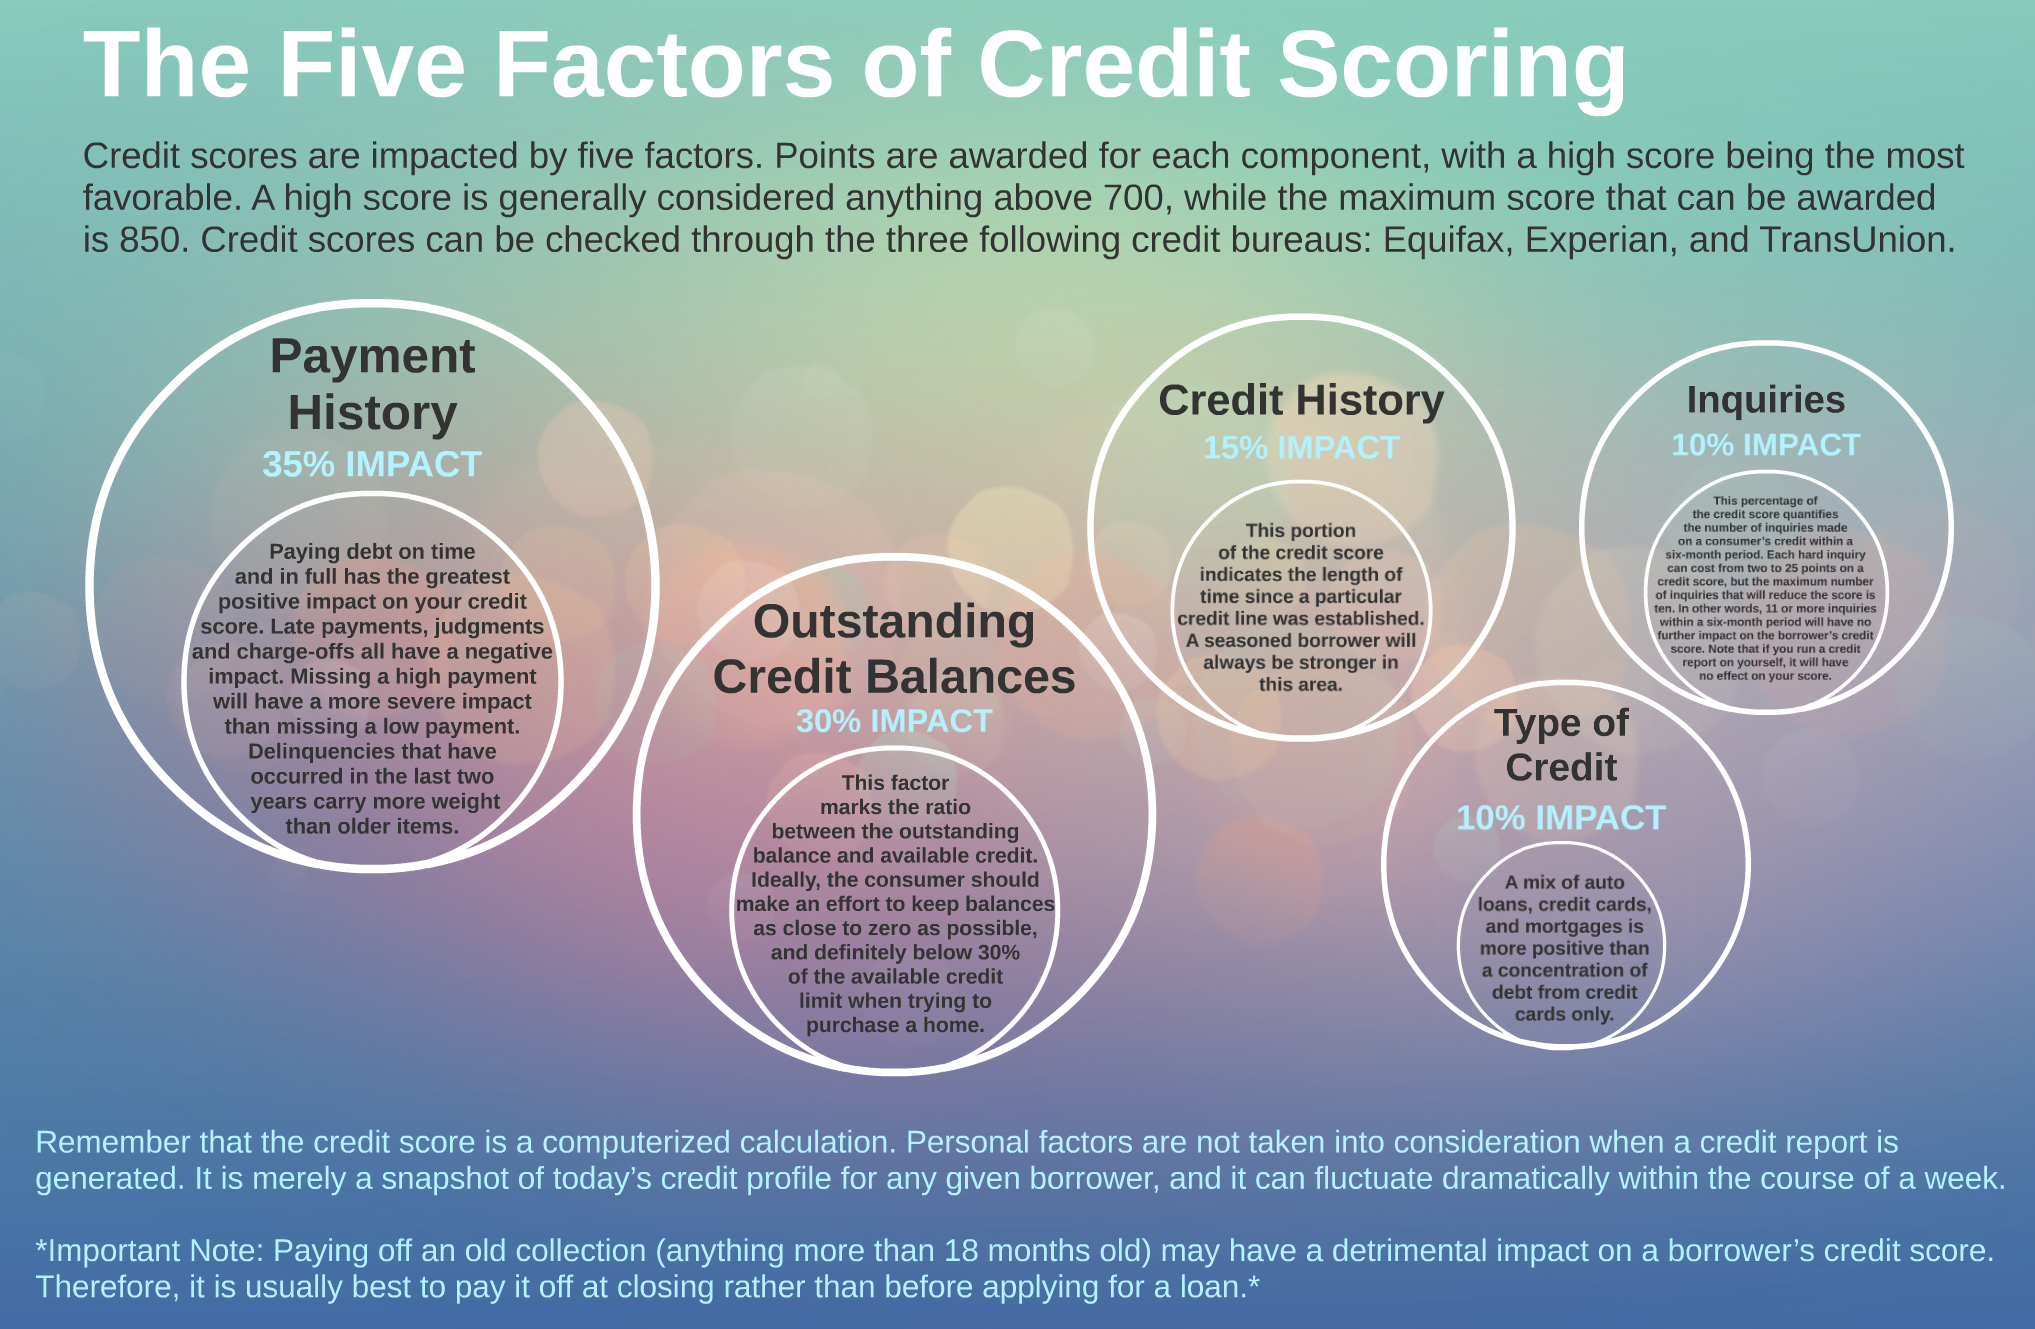 5 Factors of Credit Scoring